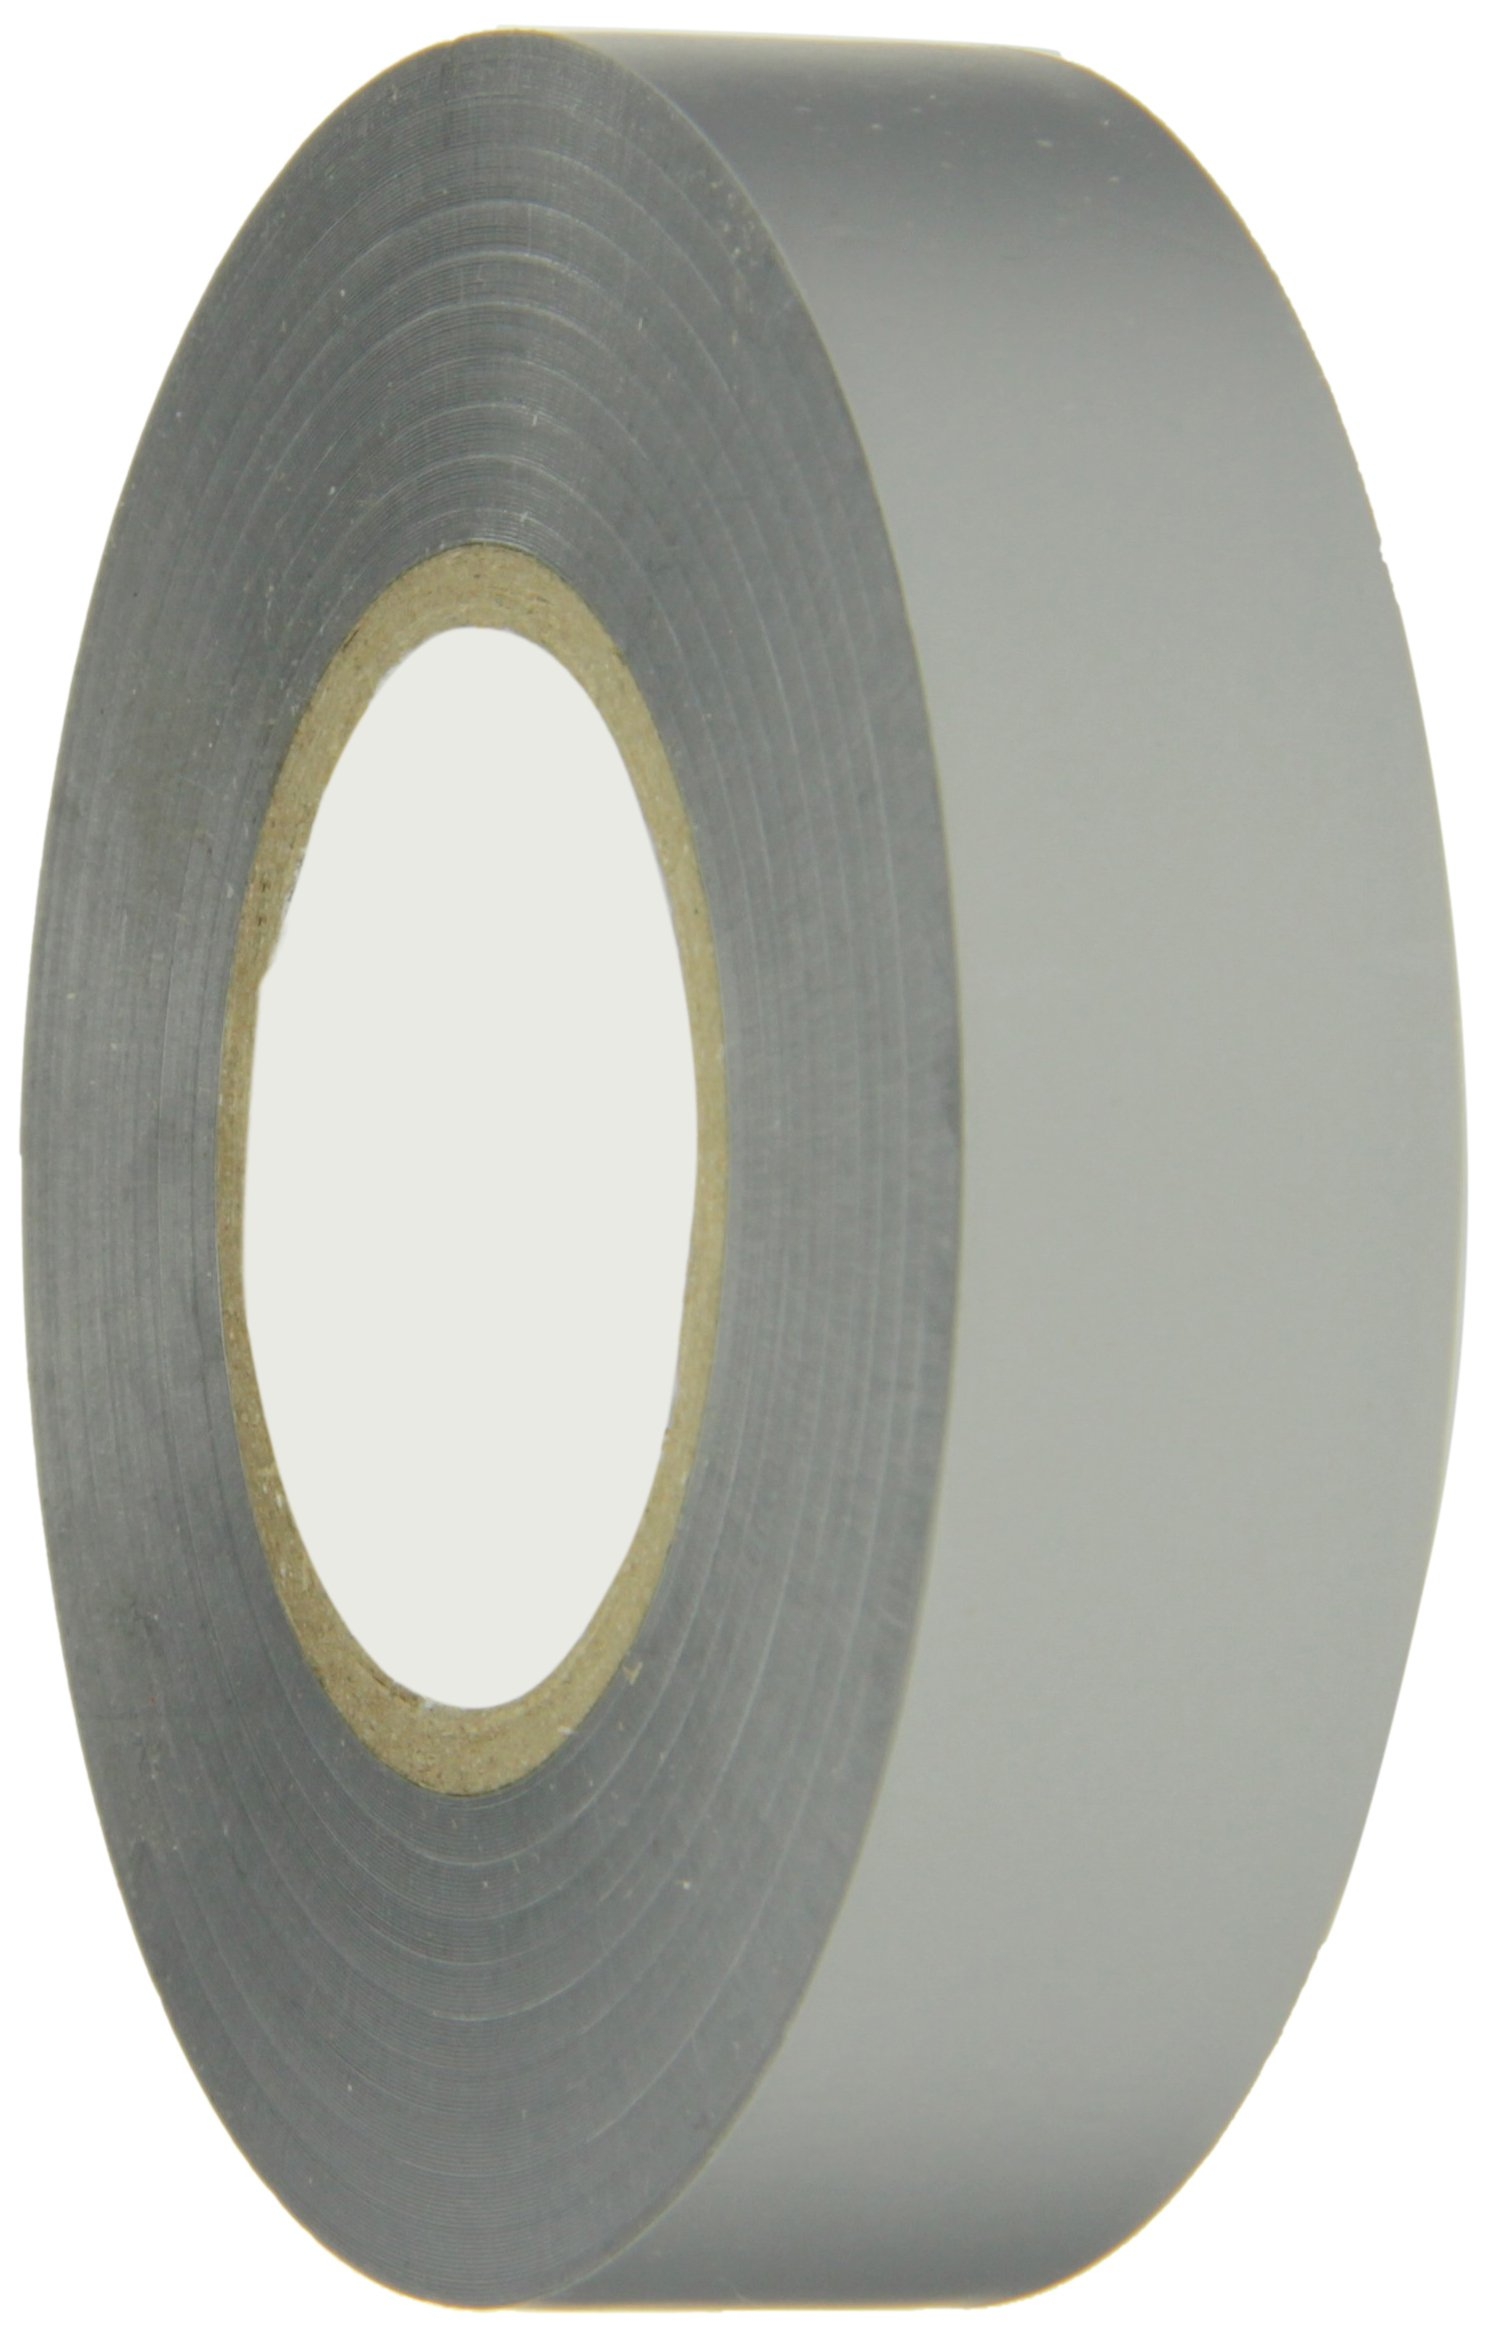 Berry Plastics PVC General Purpose Electrical Tape, 7 mil Thick, 66' Length, 3/4'' Width, Gray